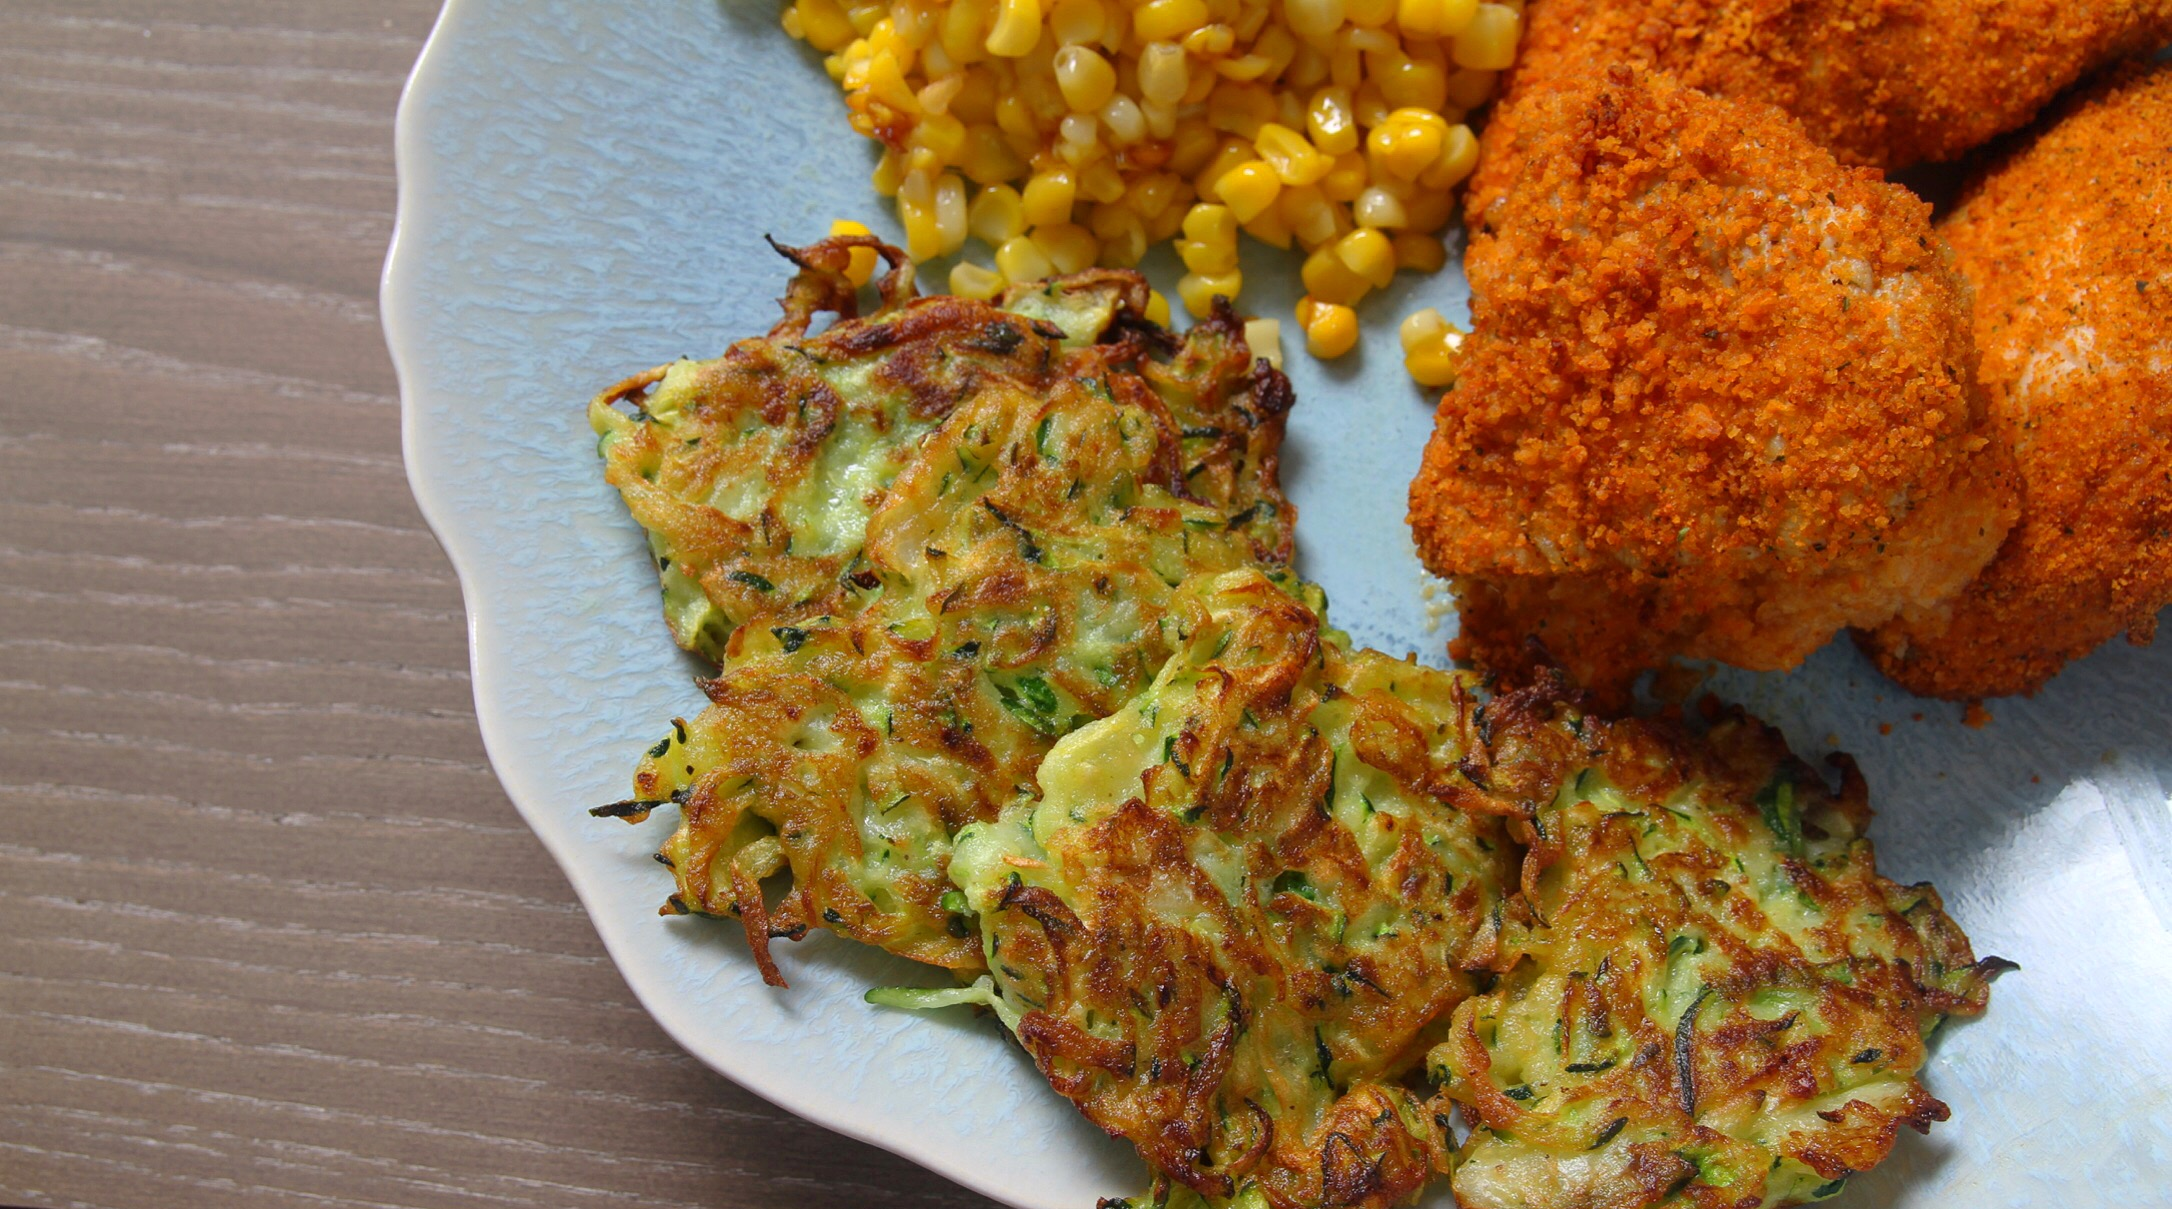 Zucchini fritters with corn and crispy baked chicken.